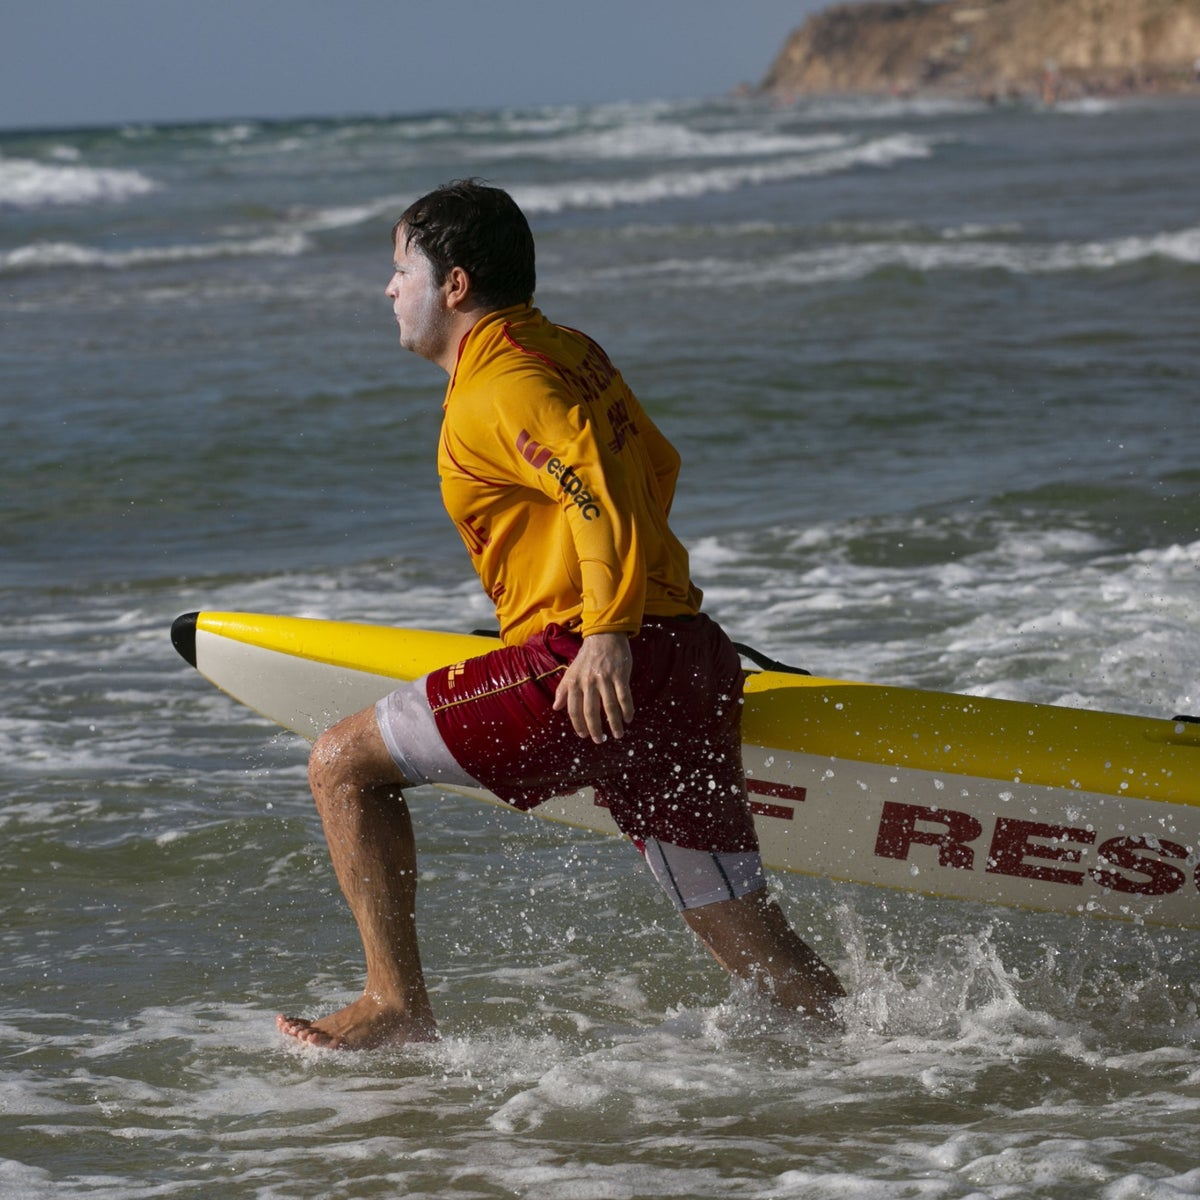 A volunteer at Surf Life Saving course in Herzliya runs into the sea during a practice rescue mission, last month.